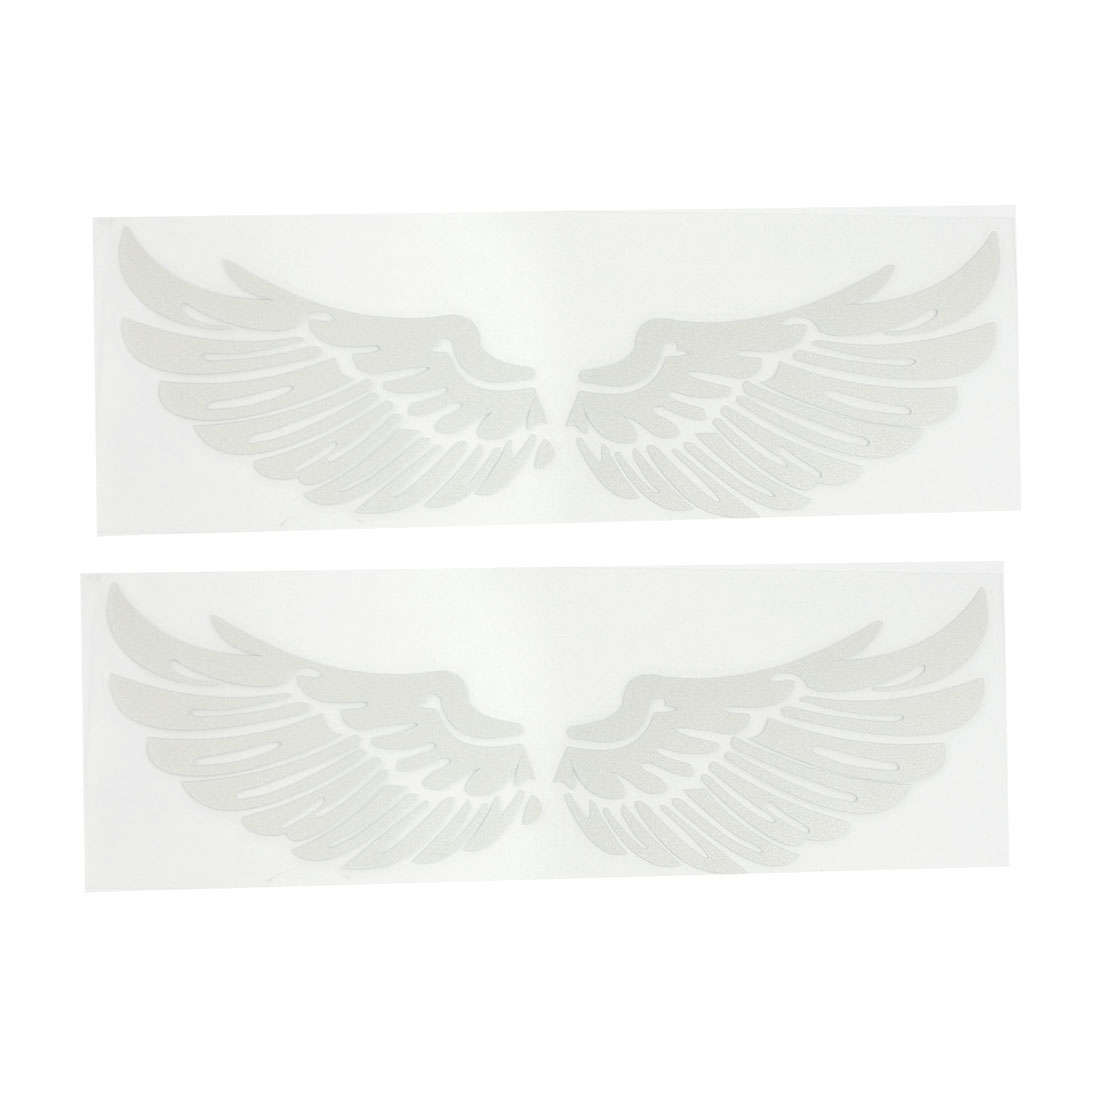 2 Pcs Silver Tone Adhesive Angel Wing Wall Truck Car Window Sticker Decal